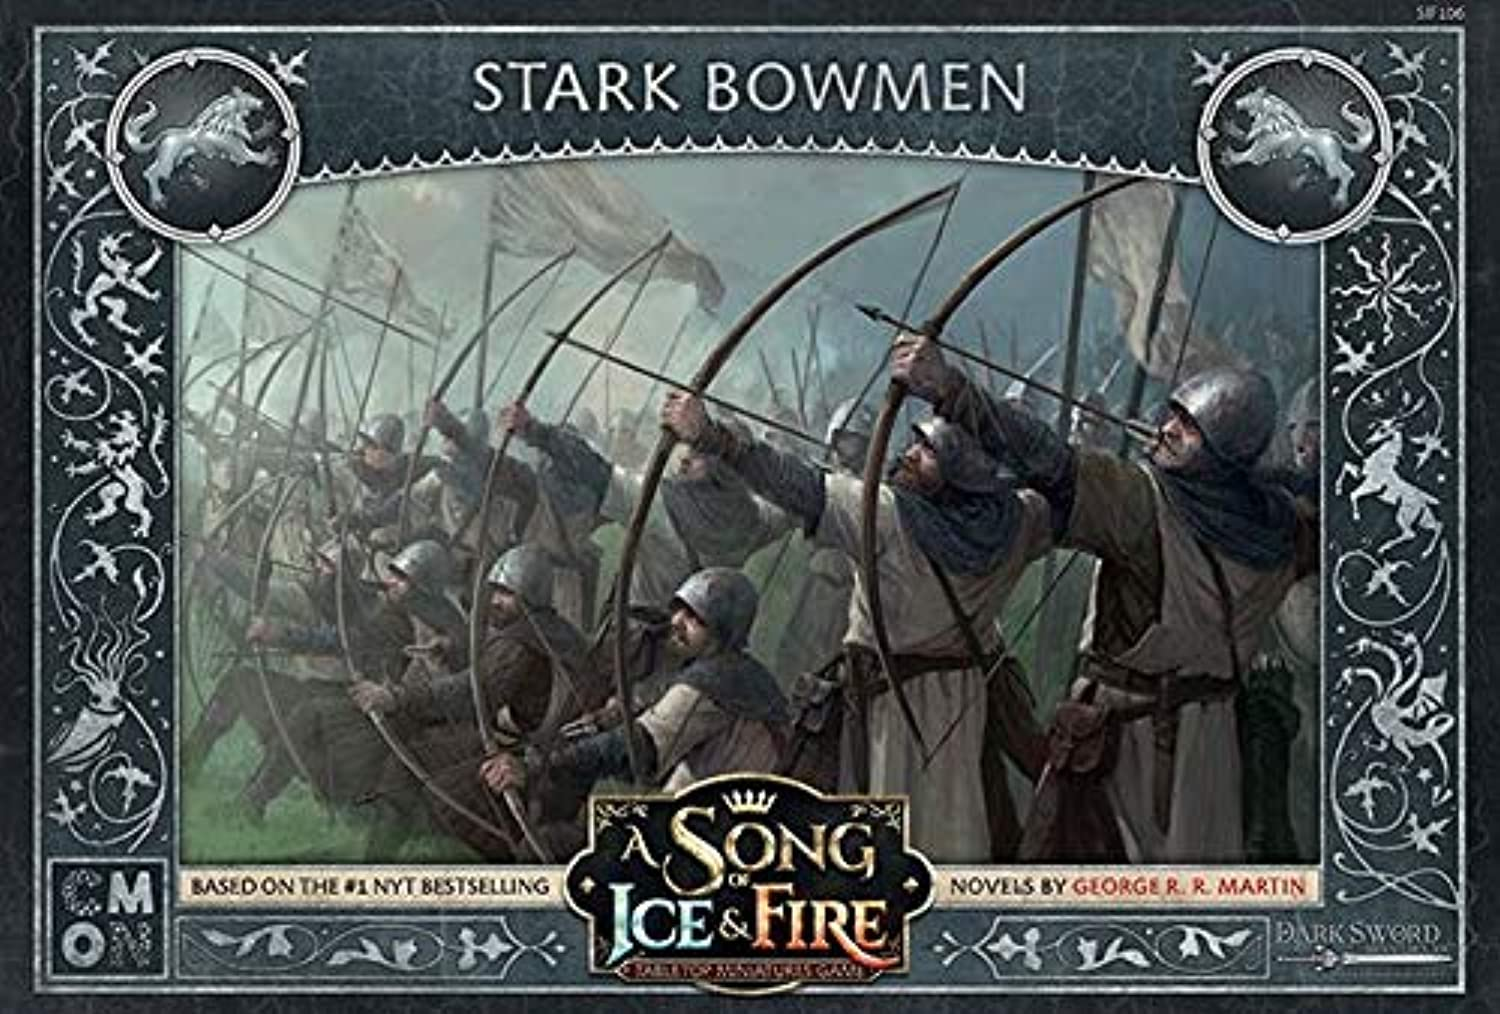 A Song of Ice & Fire Miniatures Game  Stark Bowmen